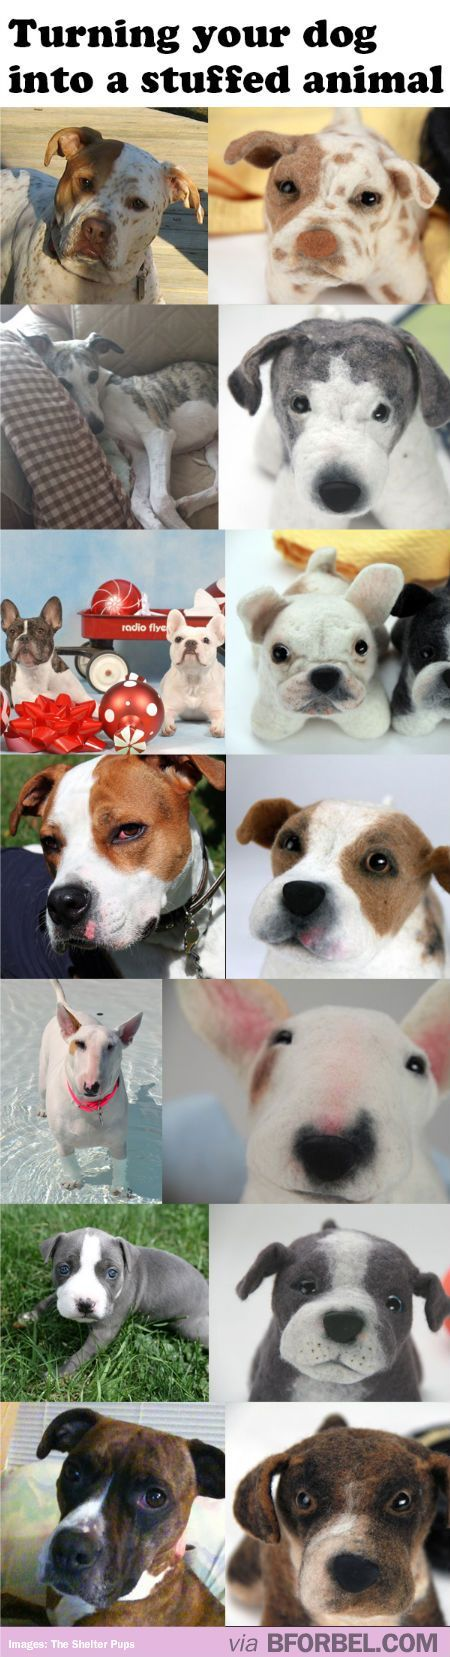 This website turns your dog into a stuffed animal! Proceeds support Shelters and Rescues!